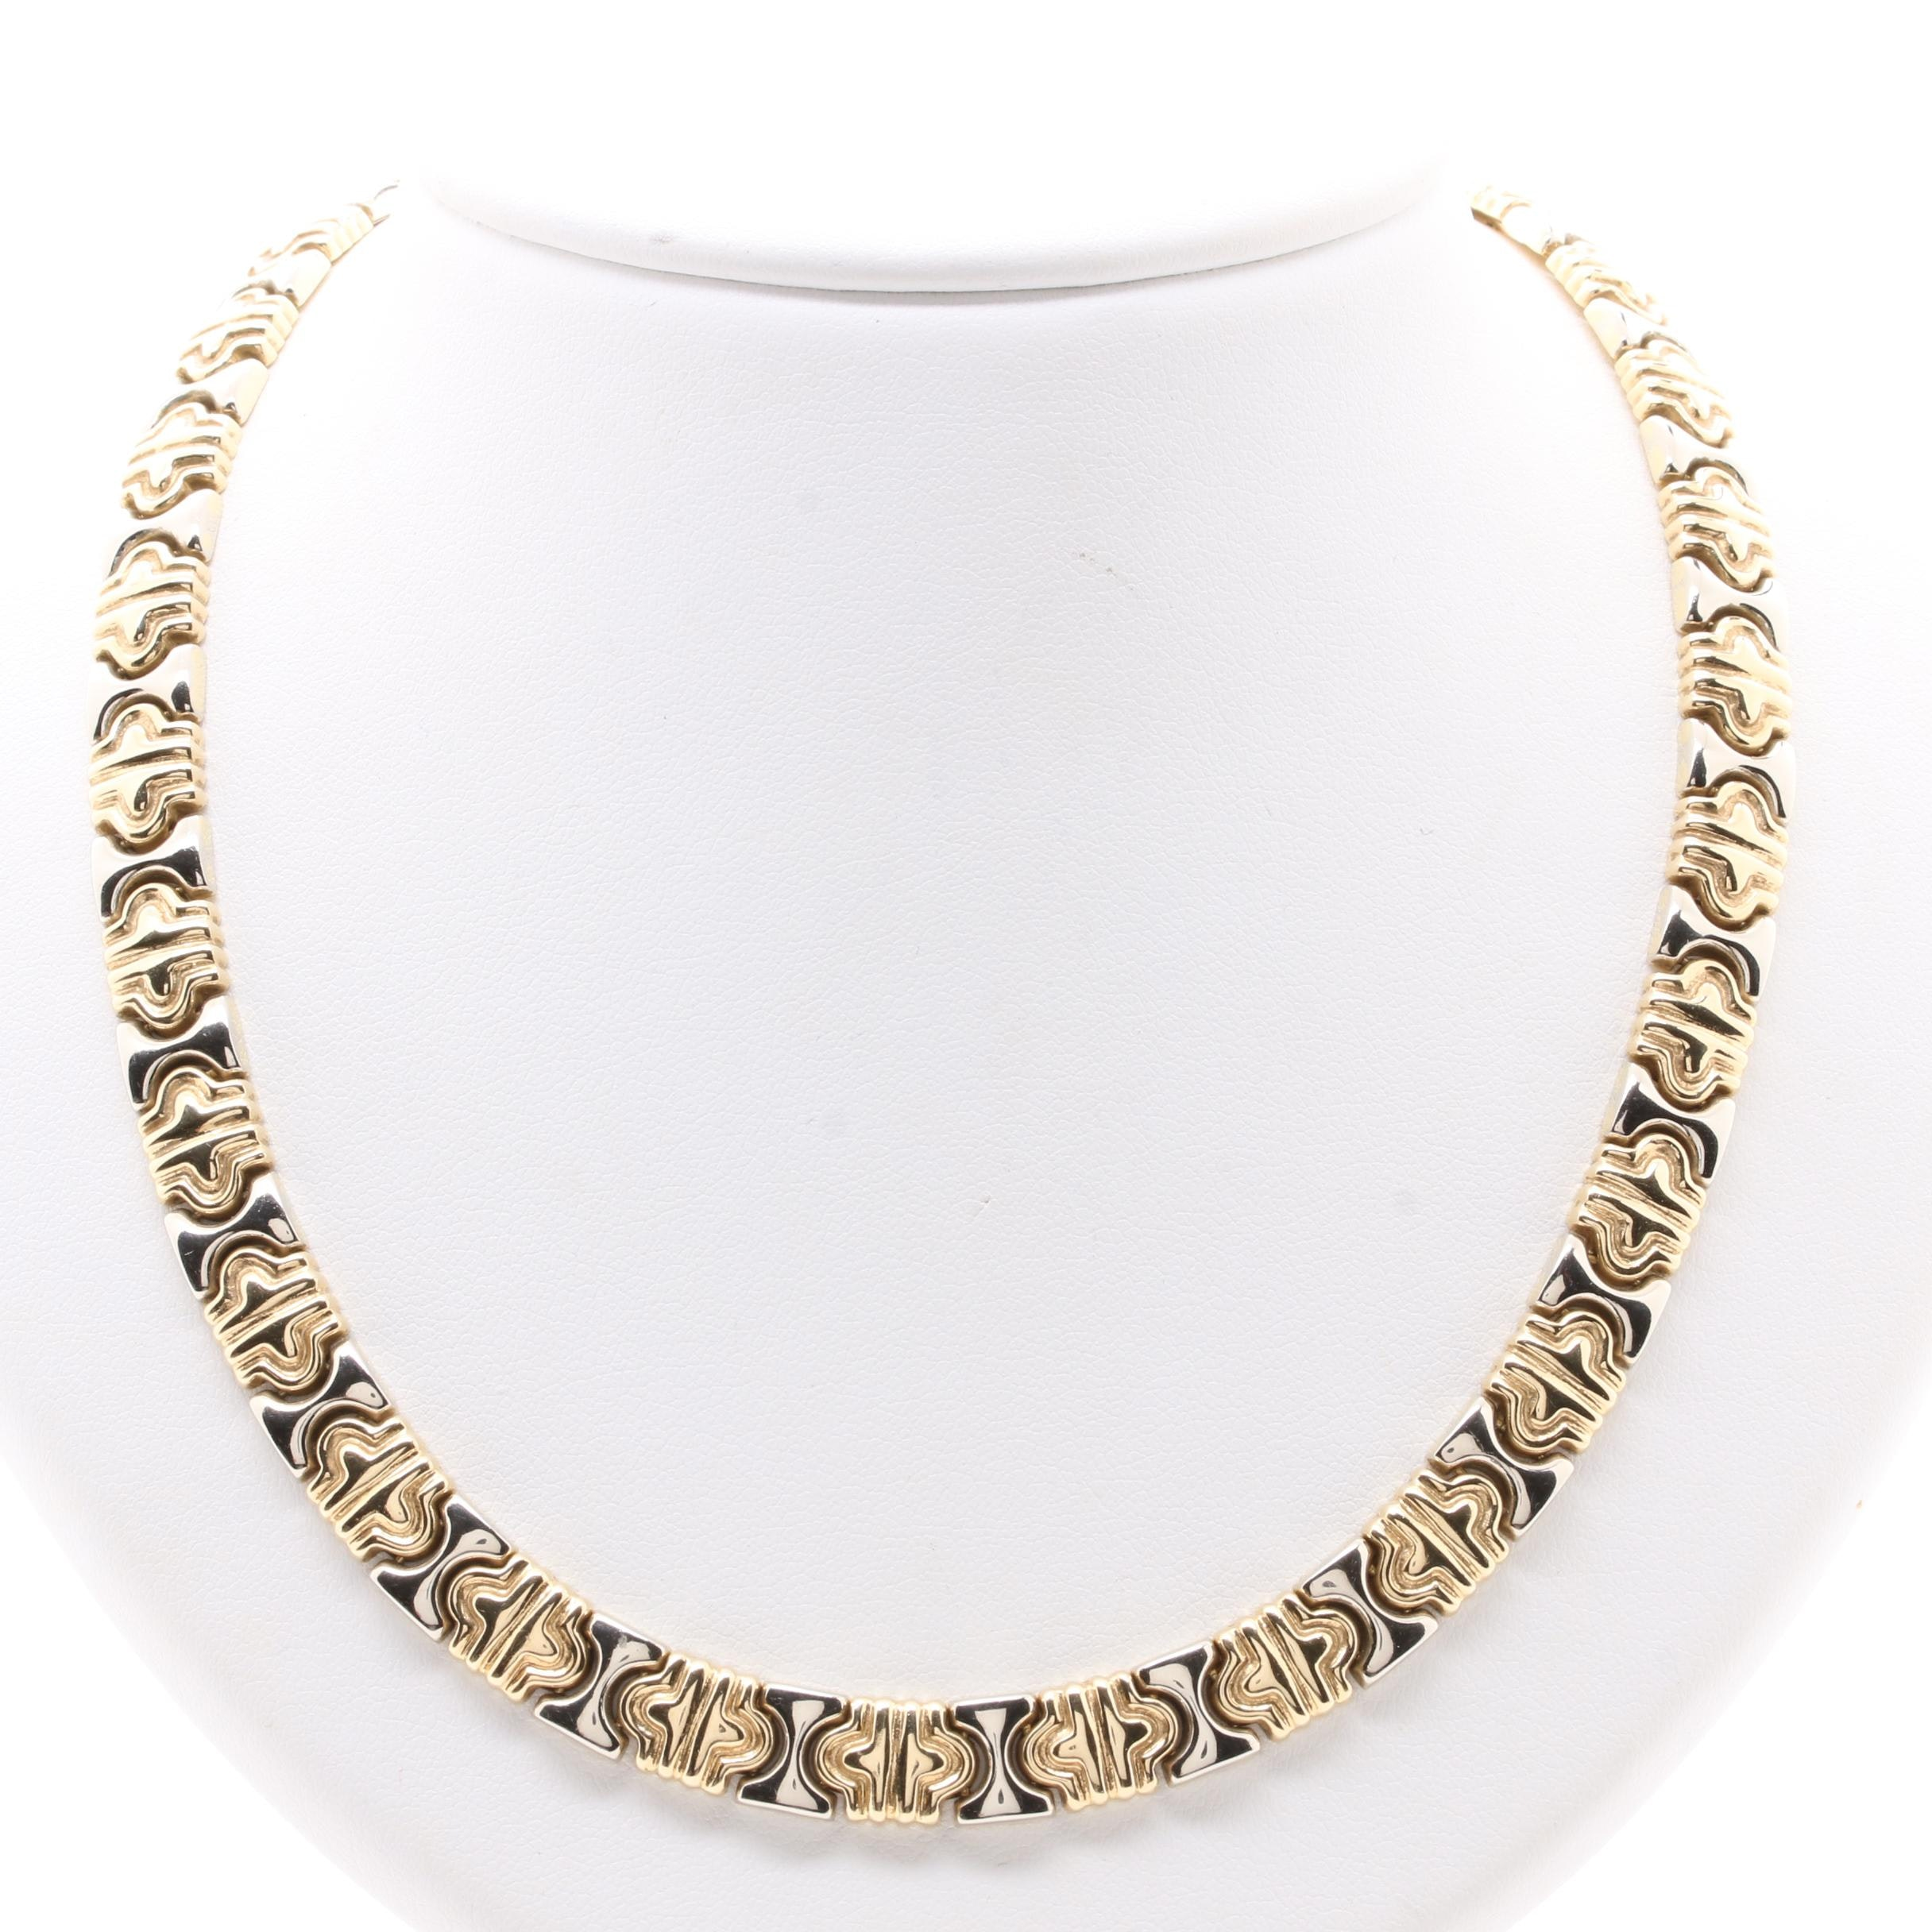 14K Yellow Gold Link Necklace with 14K White Gold Accents